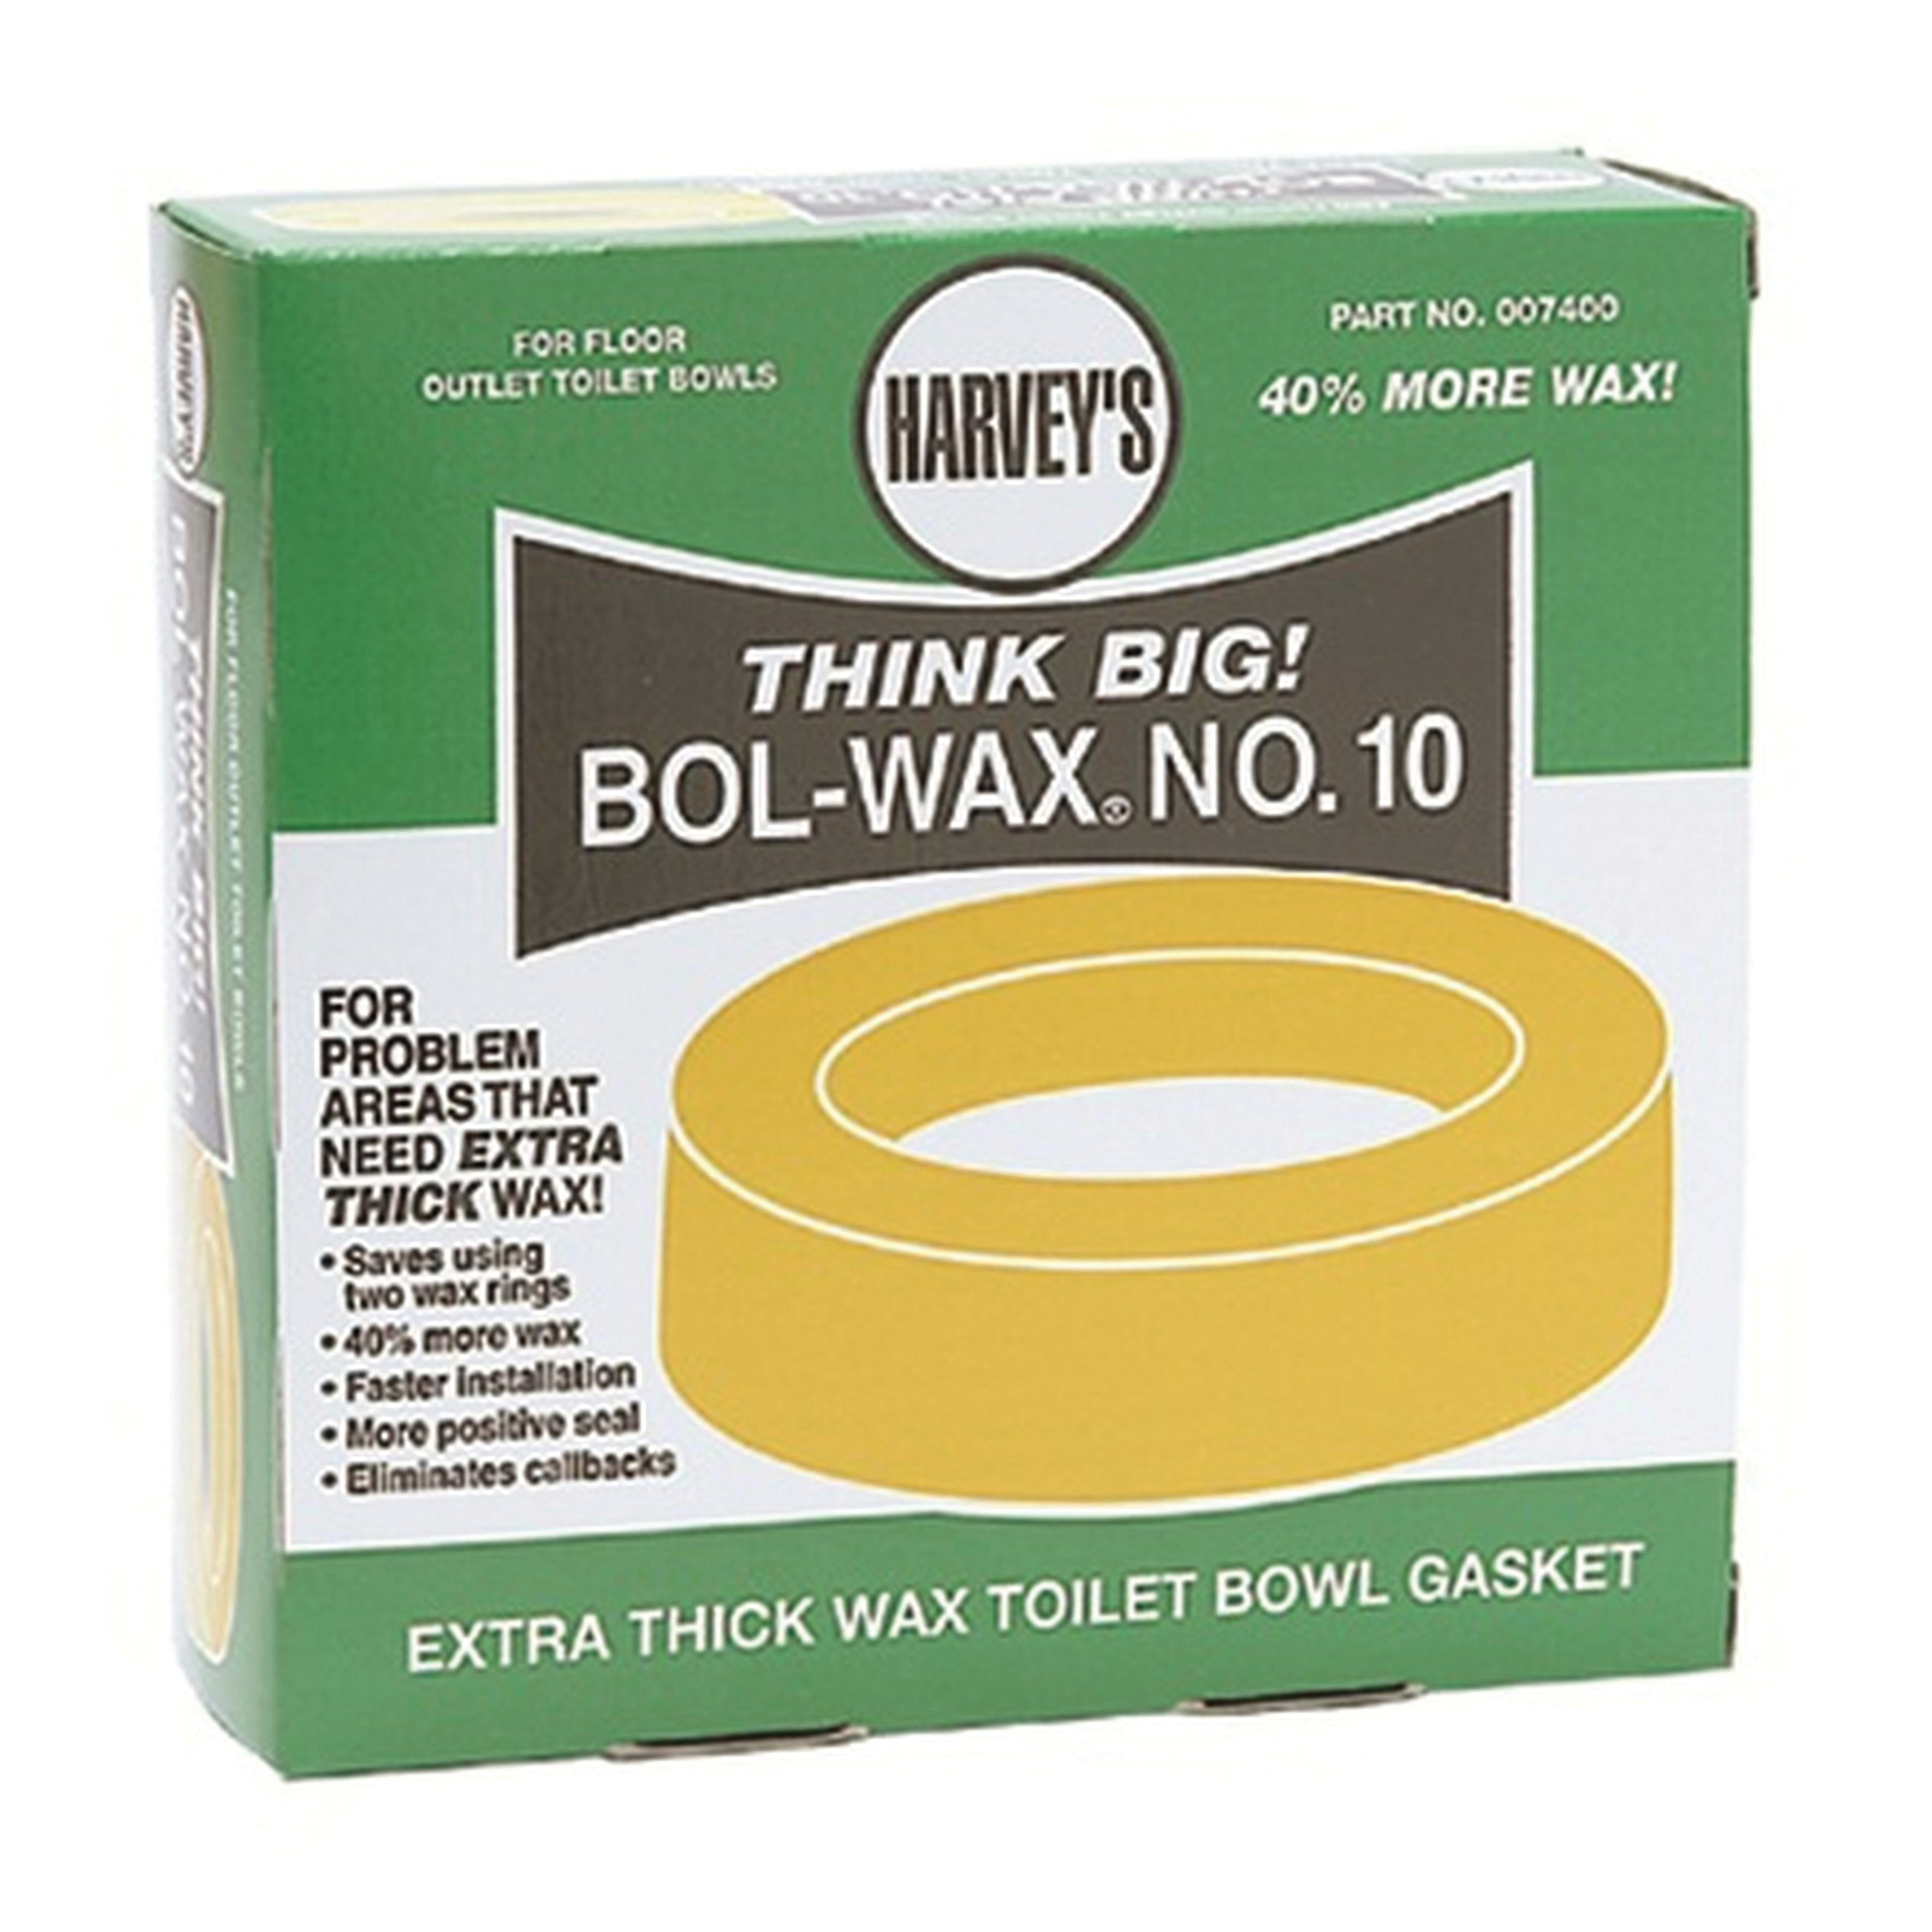 Harvey® 007400 Bol-Wax® No. 10 Standard Extra-Thick Wax Gasket, For Use With Floor Closet Bowl